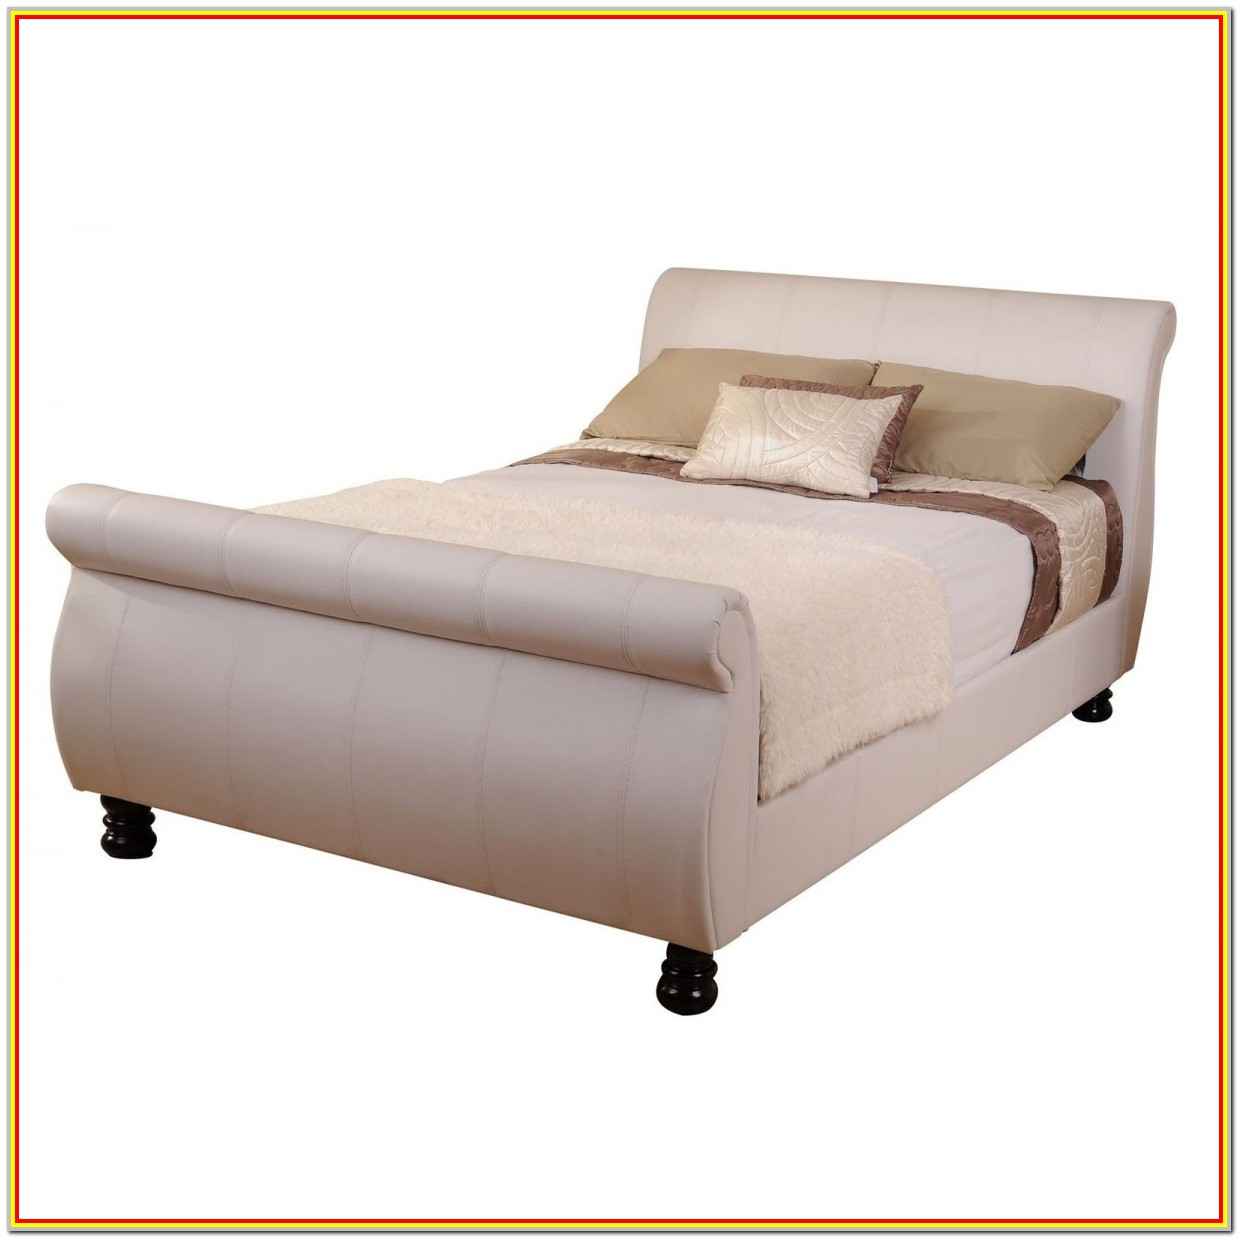 King Size Sleigh Bed Frame White